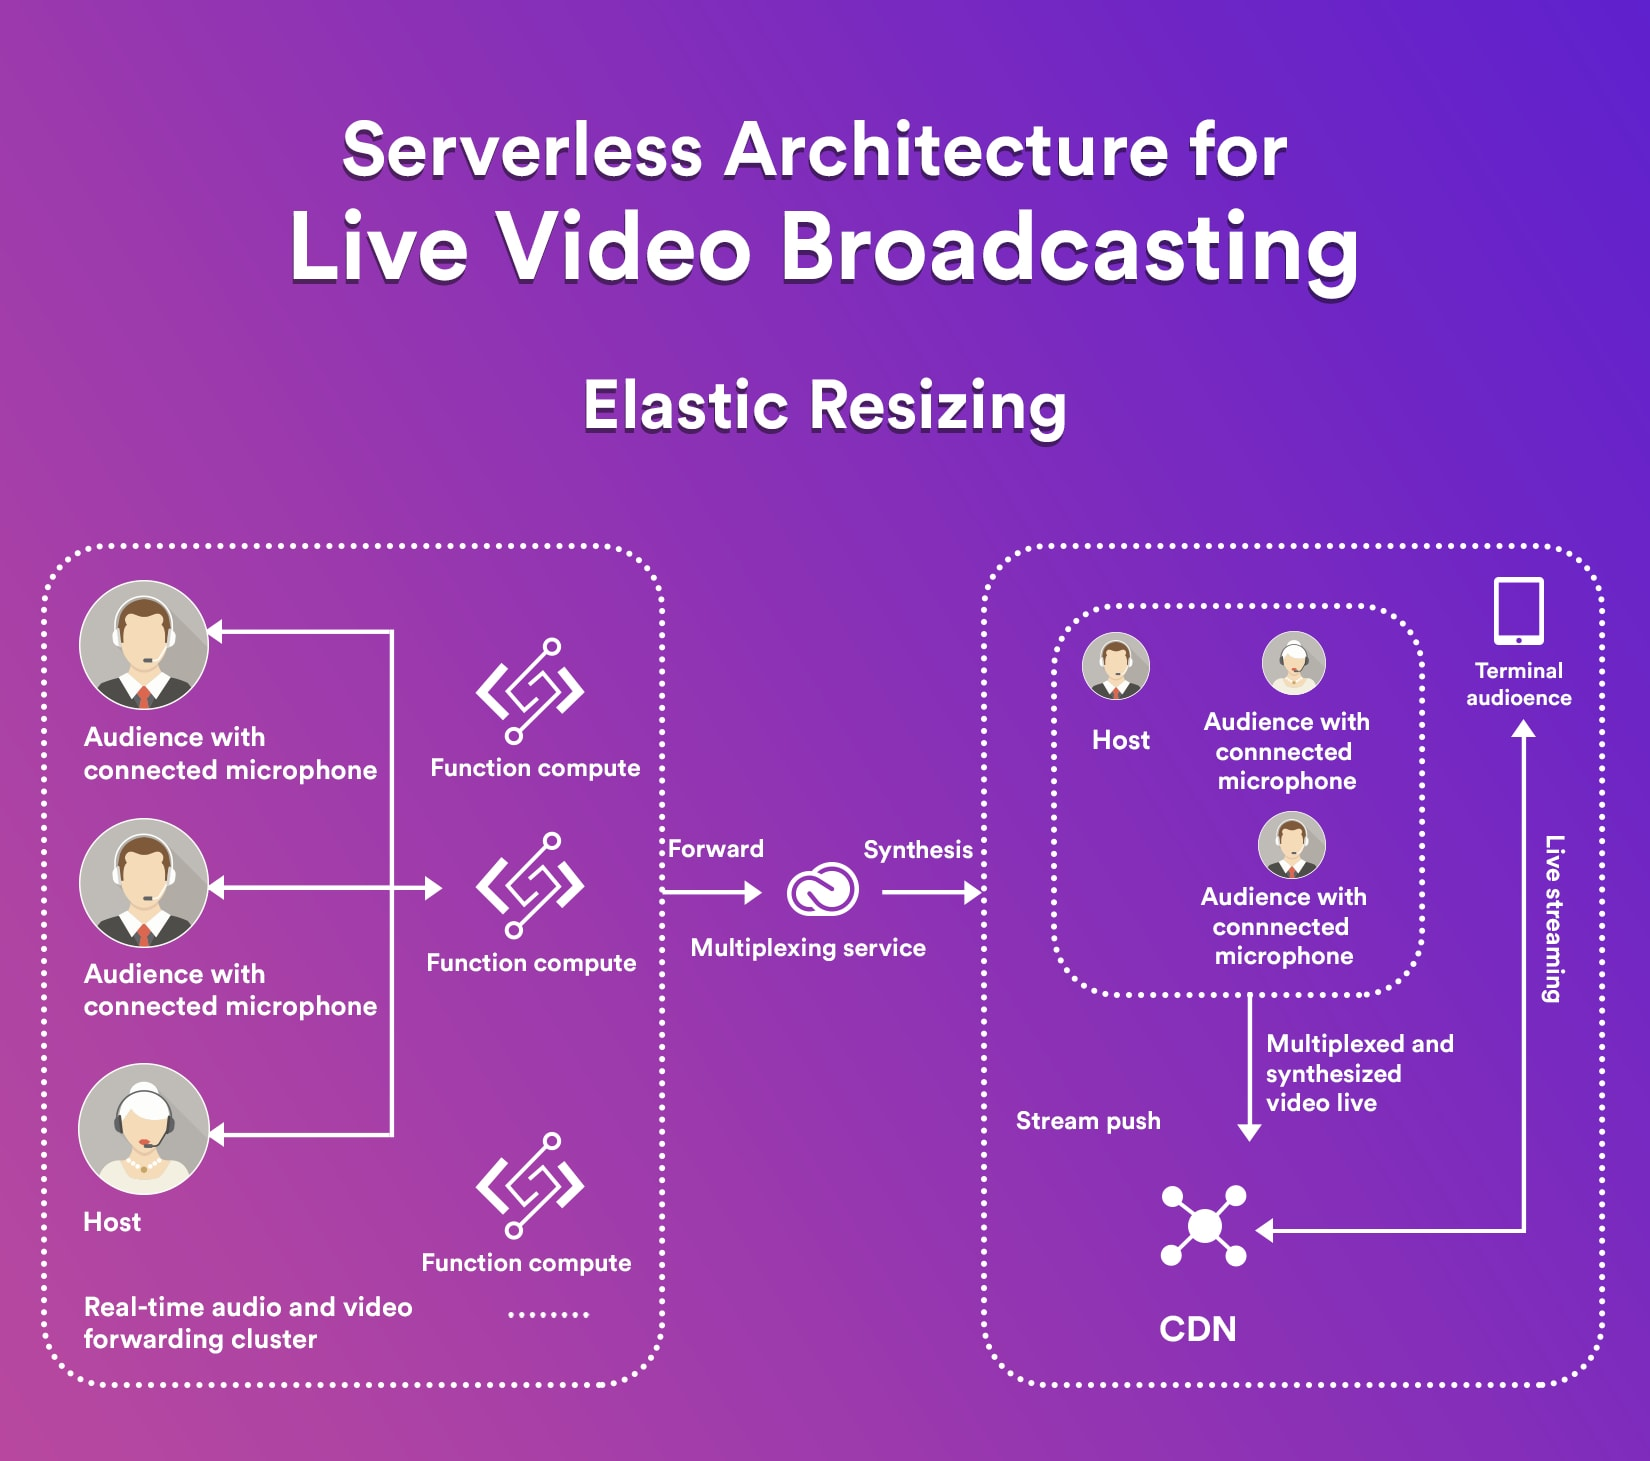 live streaming app with live video broadcasting and elastic resizing